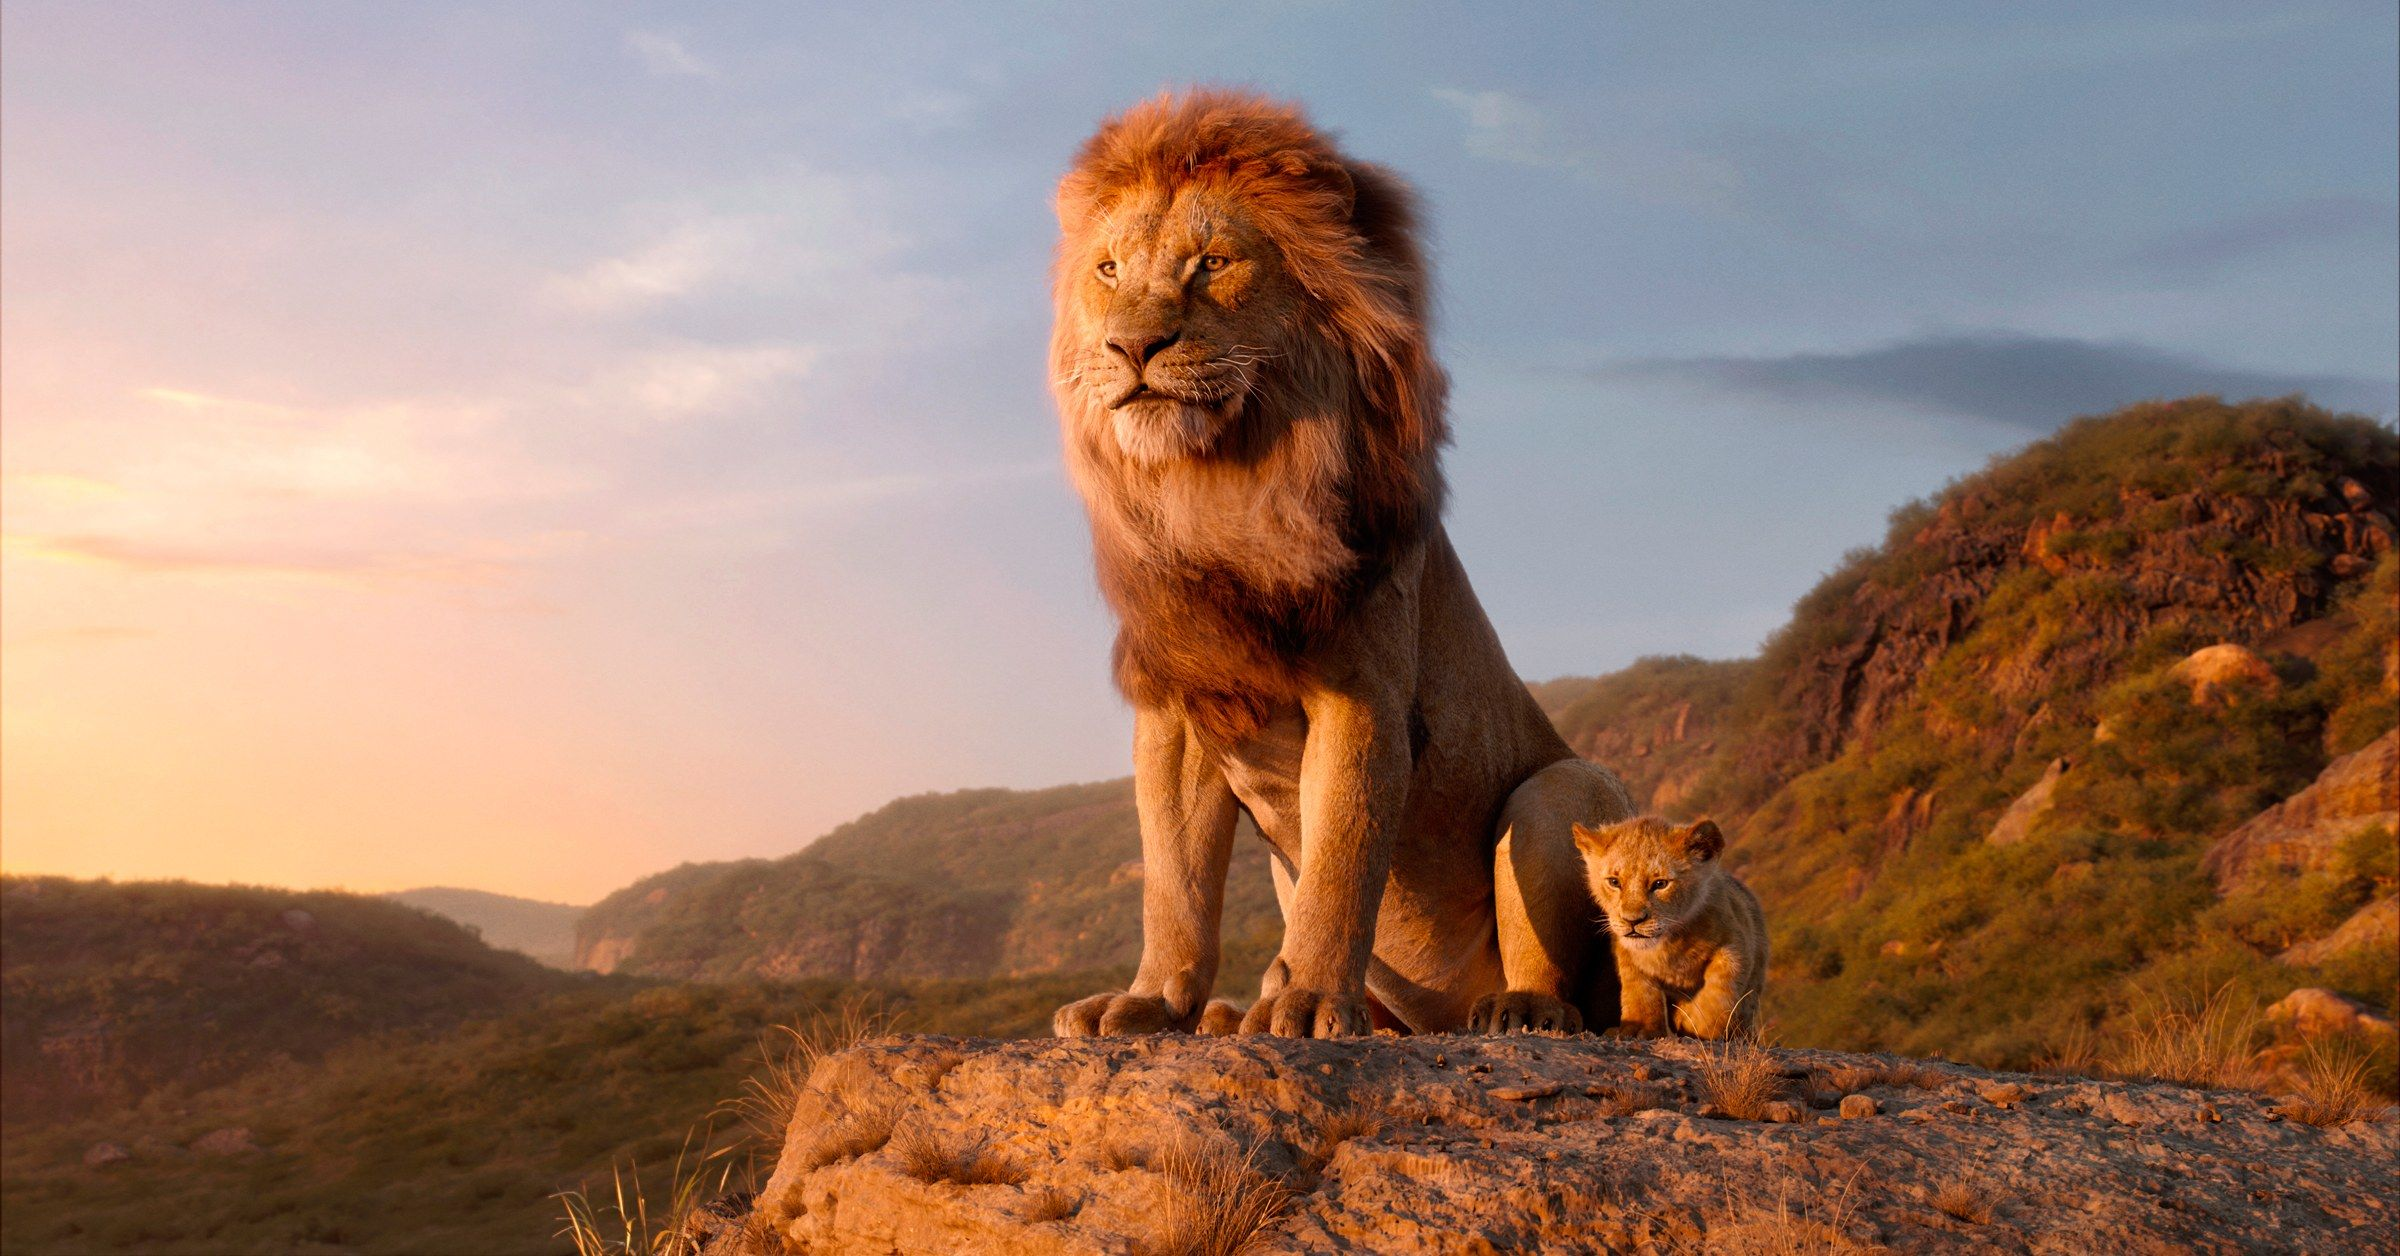 Comme Des Betes Bande Annonce Disney S New Lion King Is The Vr Fueled Future Of Cinema Avec